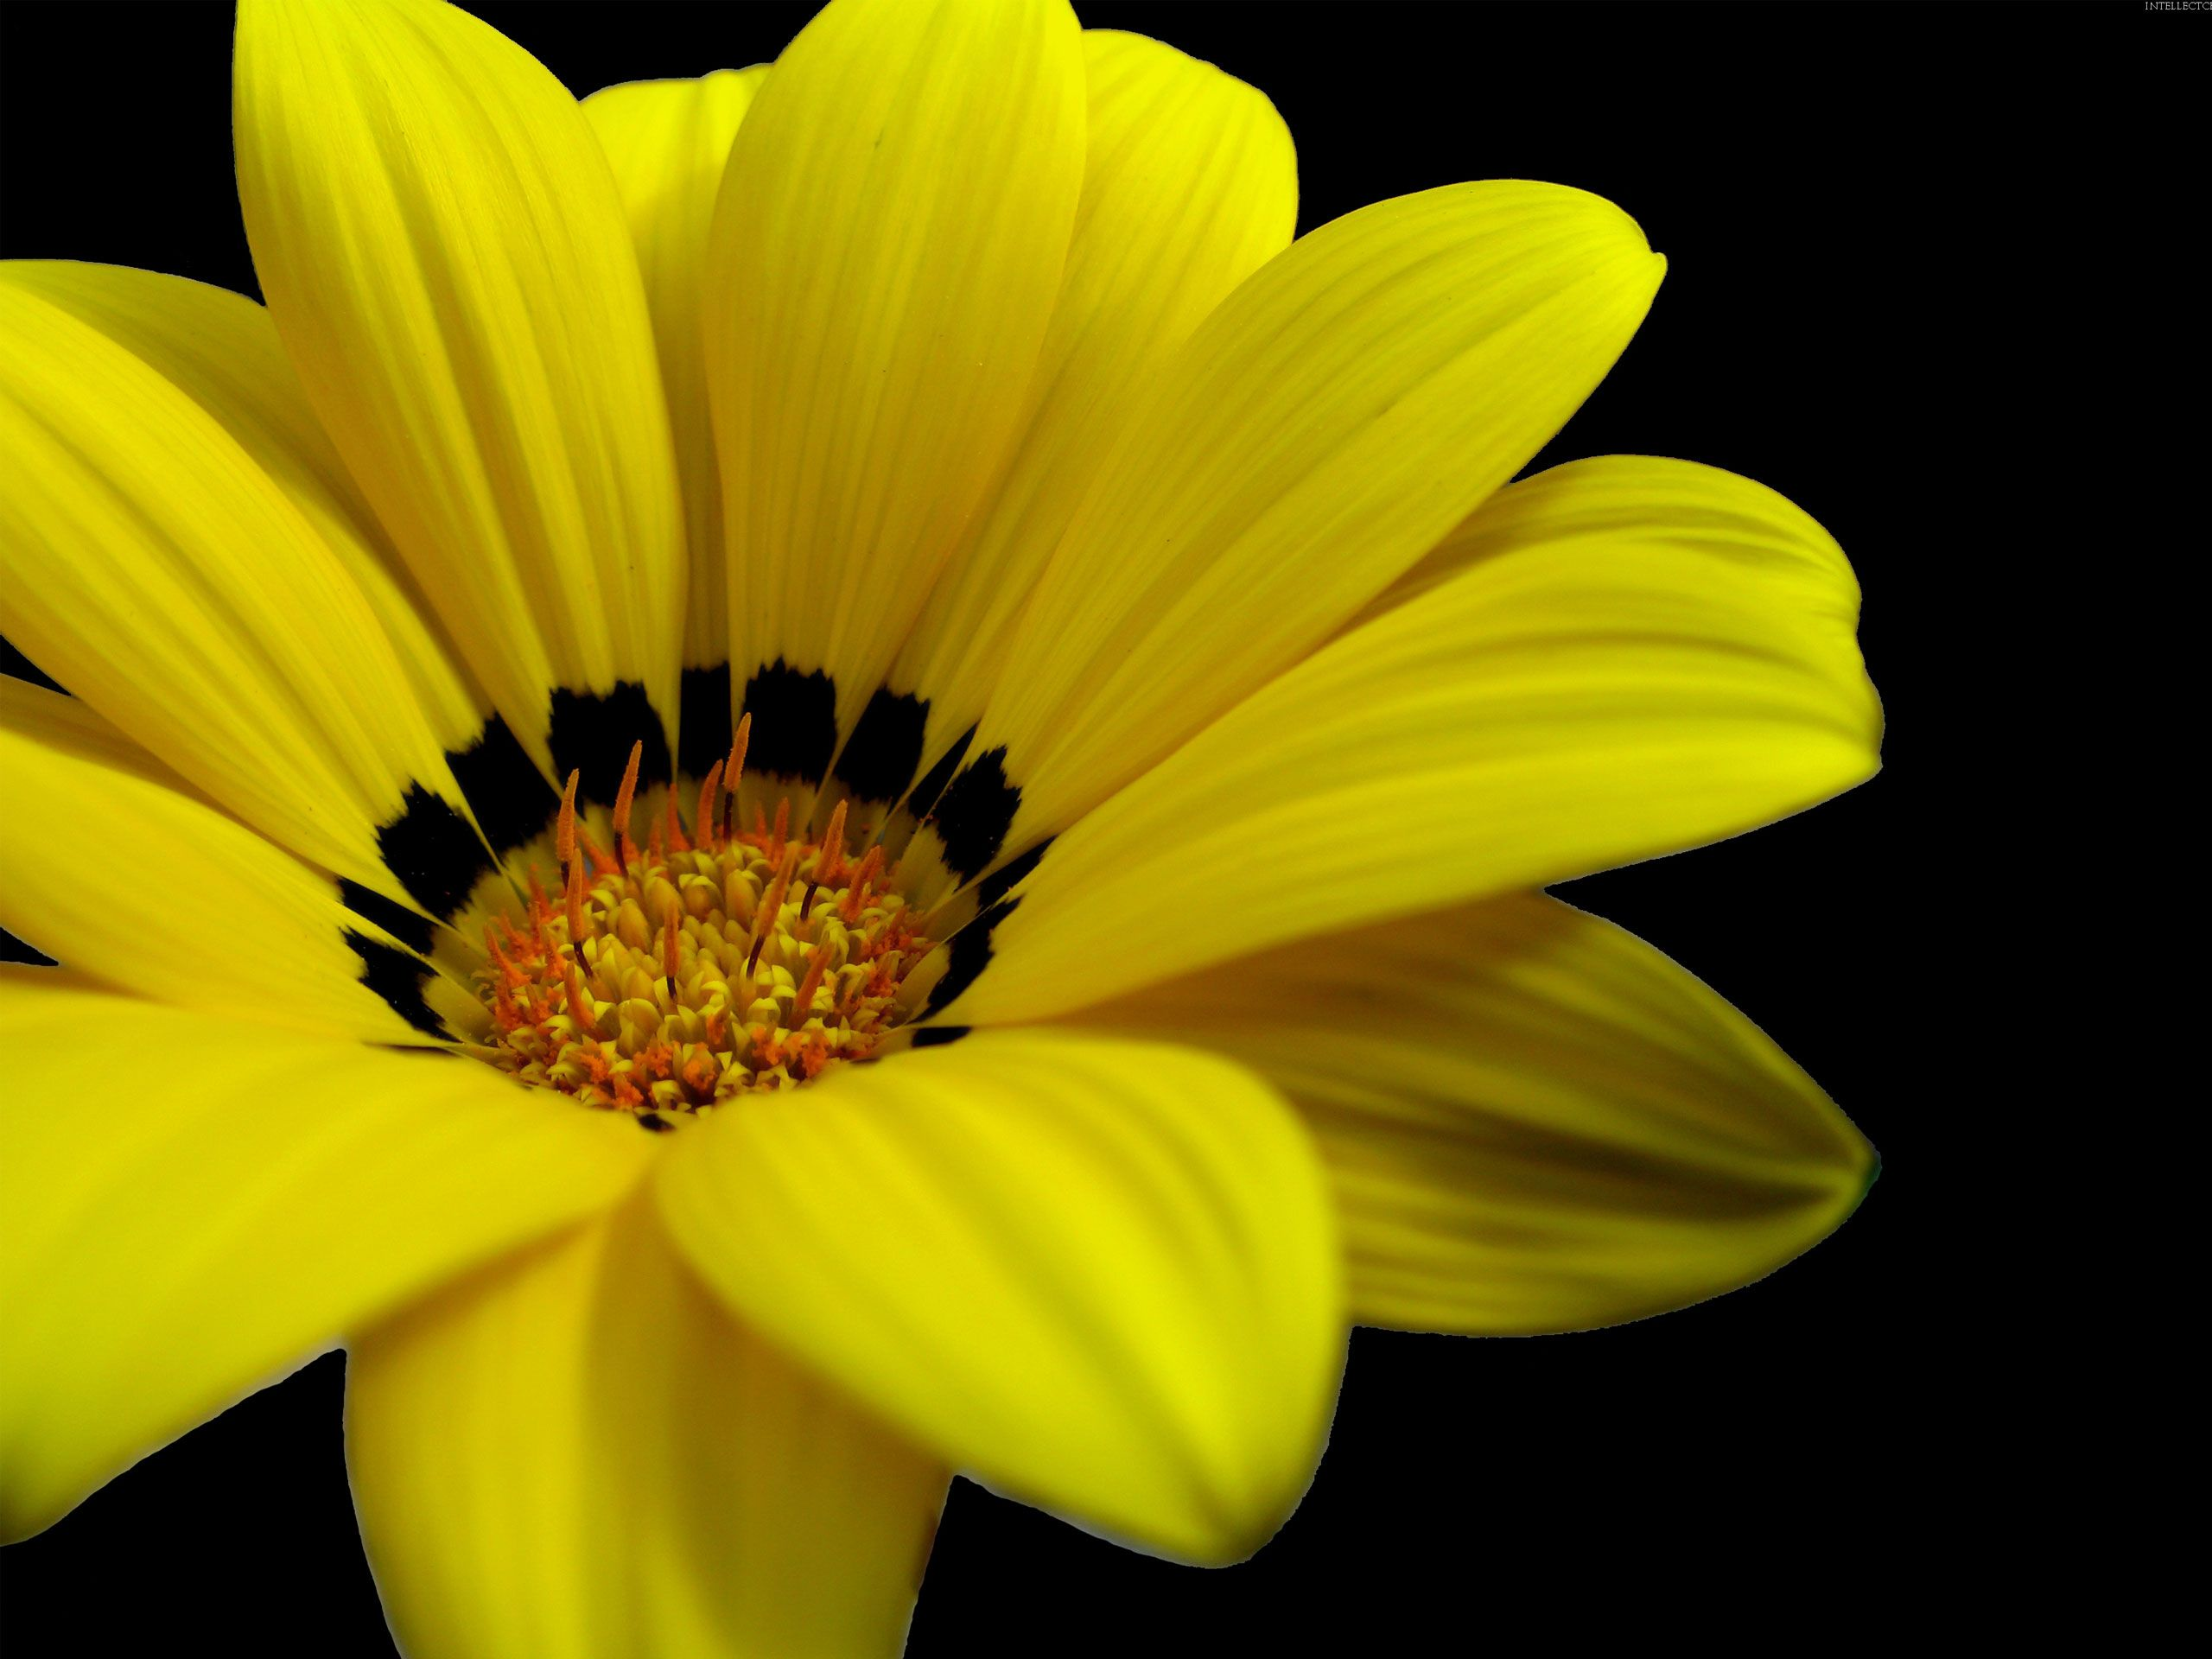 Hd wallpaper yellow flowers - Download Yellow Flowers 14146 2560x1920 Px High Resolution